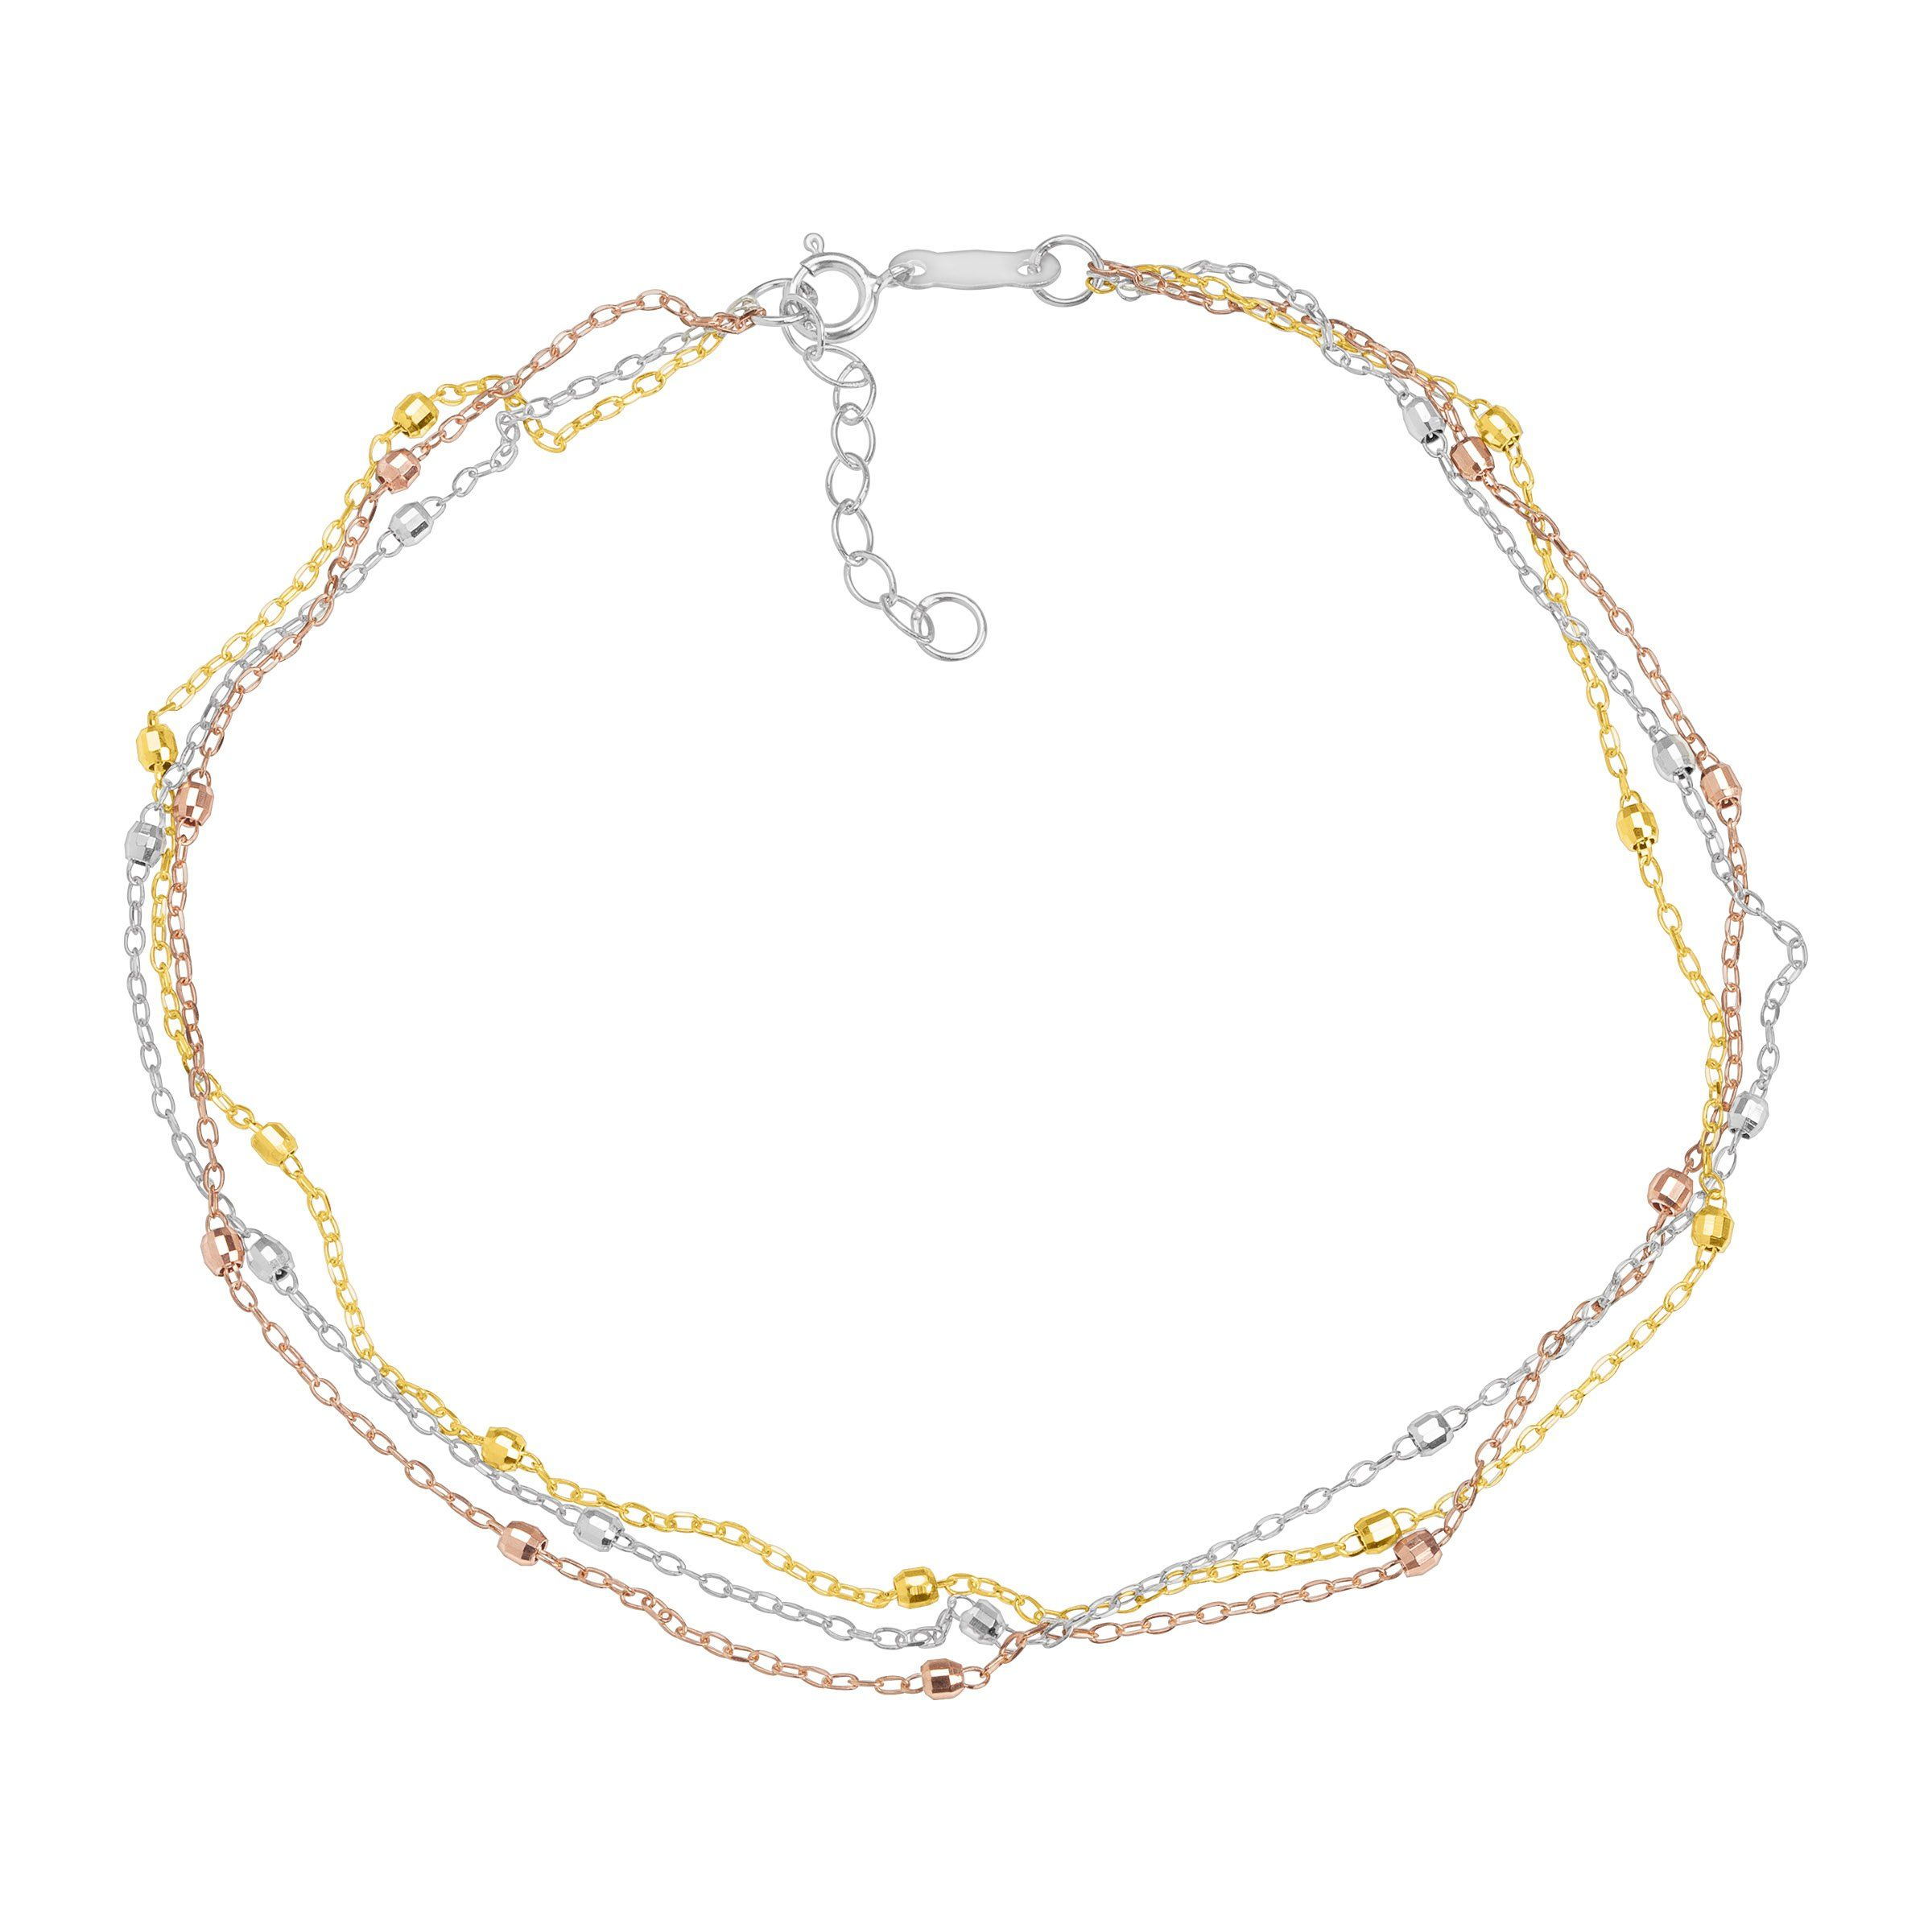 color gold chian foot fashion silver new jewelry plated nice fine pin love bracelet anklets anklet beads